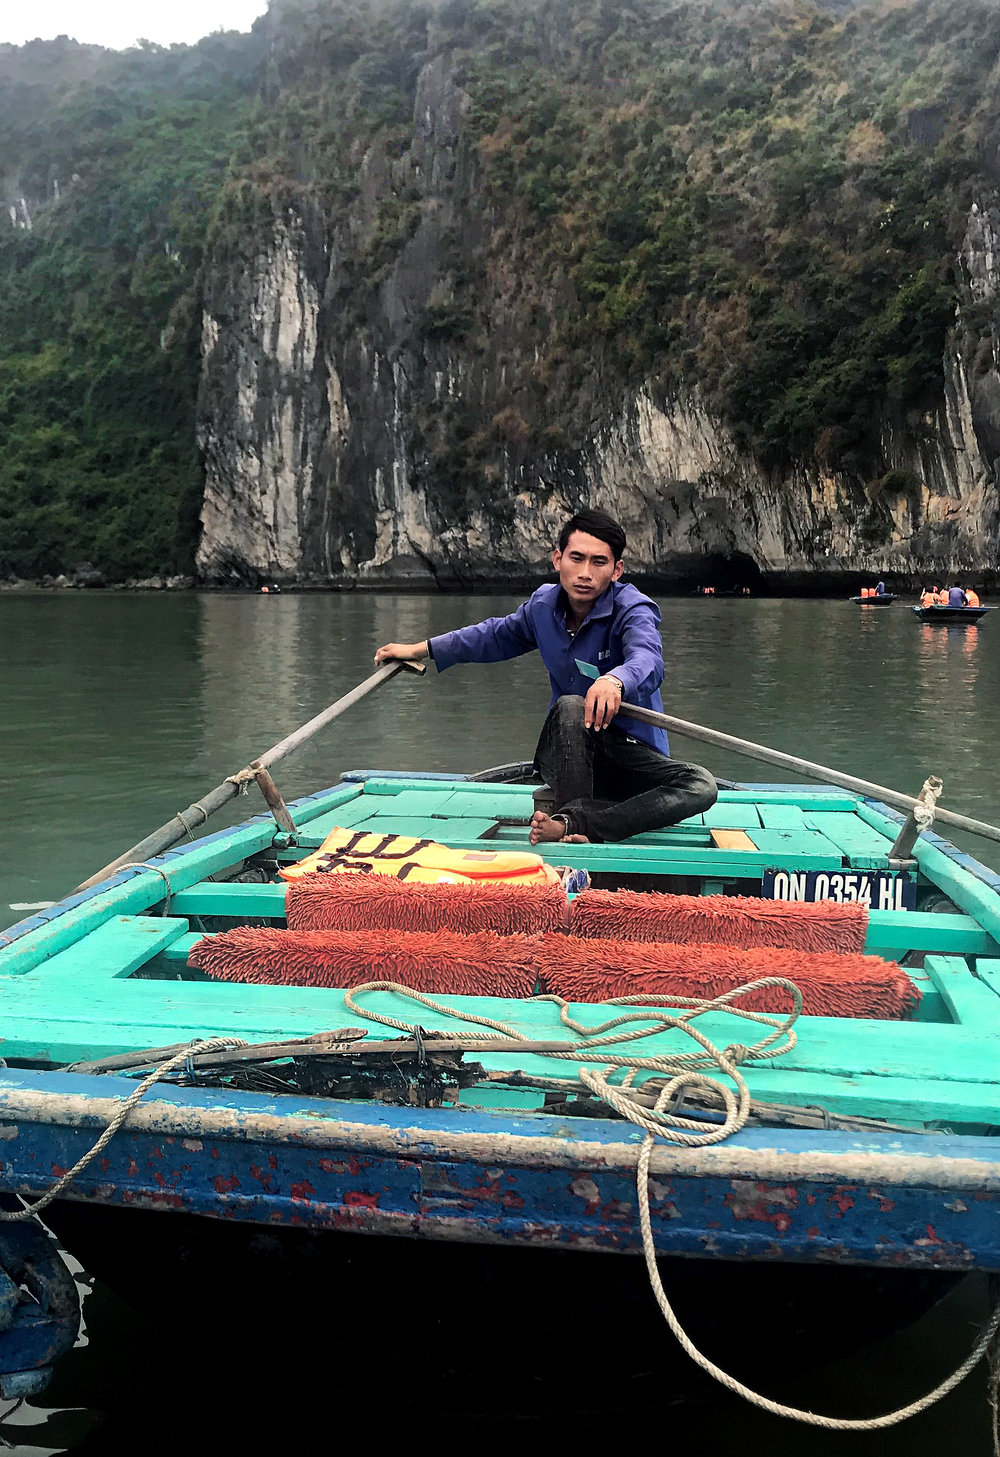 OUR BOAT GUIDE